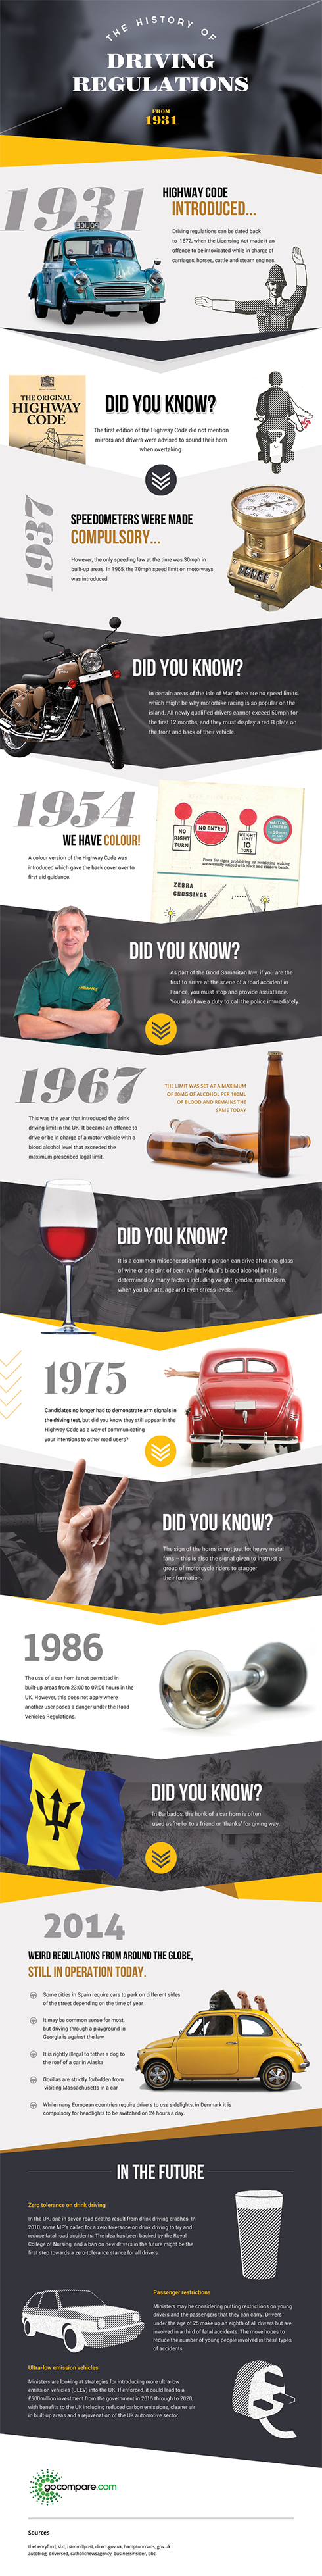 The History Of Driving Regulations Car Insurance